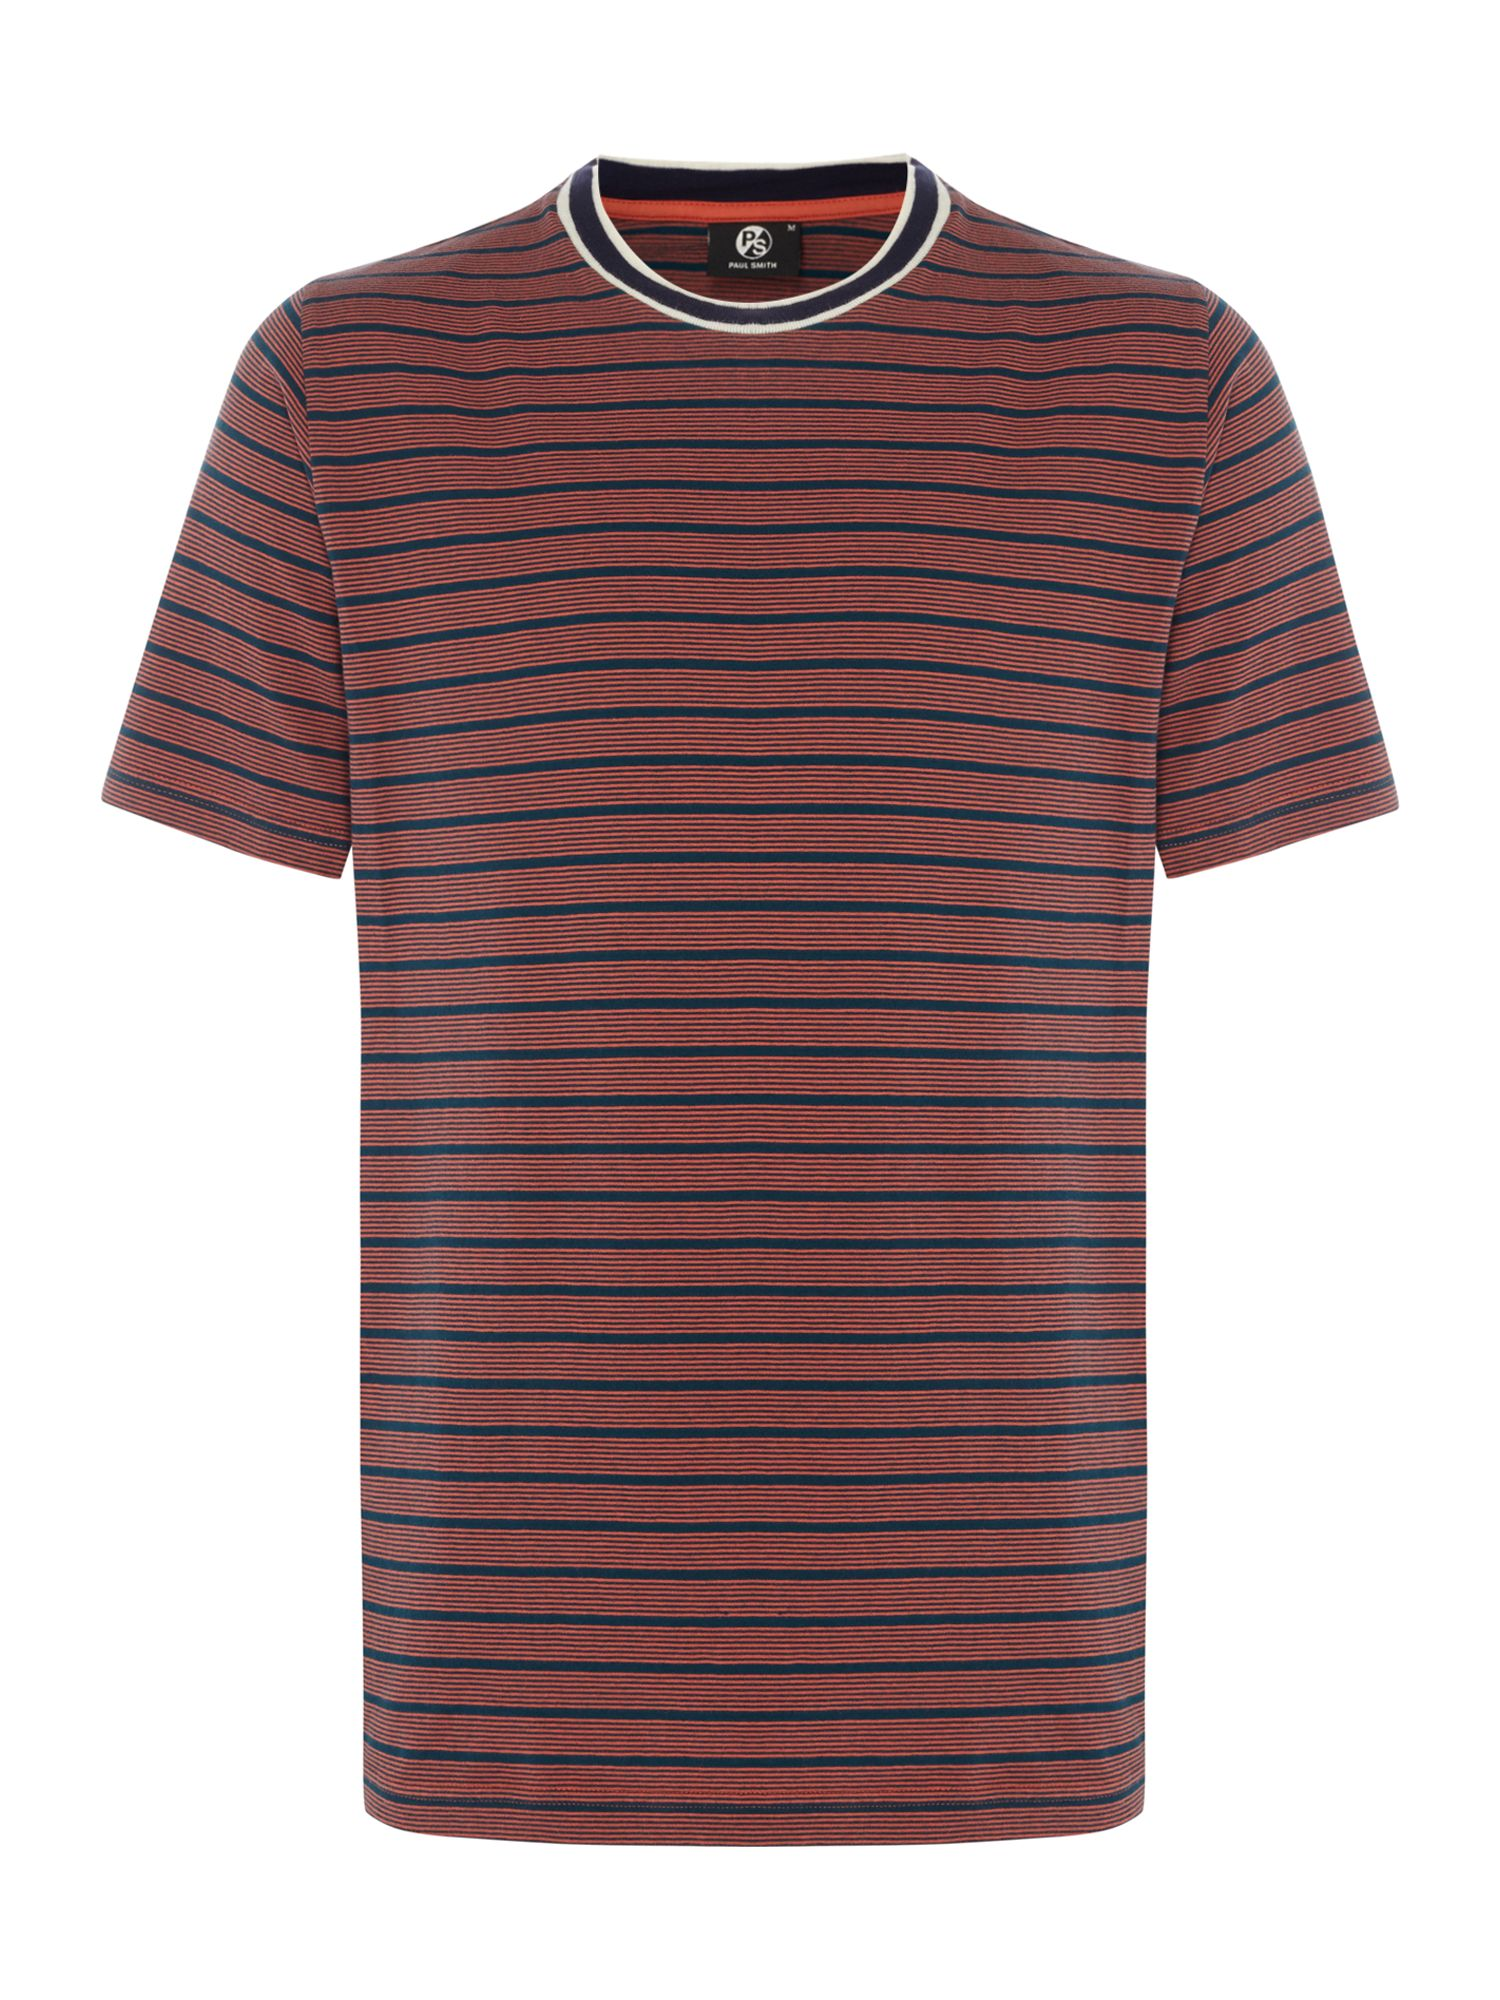 Men's PS By Paul Smith Navy stripe t-shirt, Blue